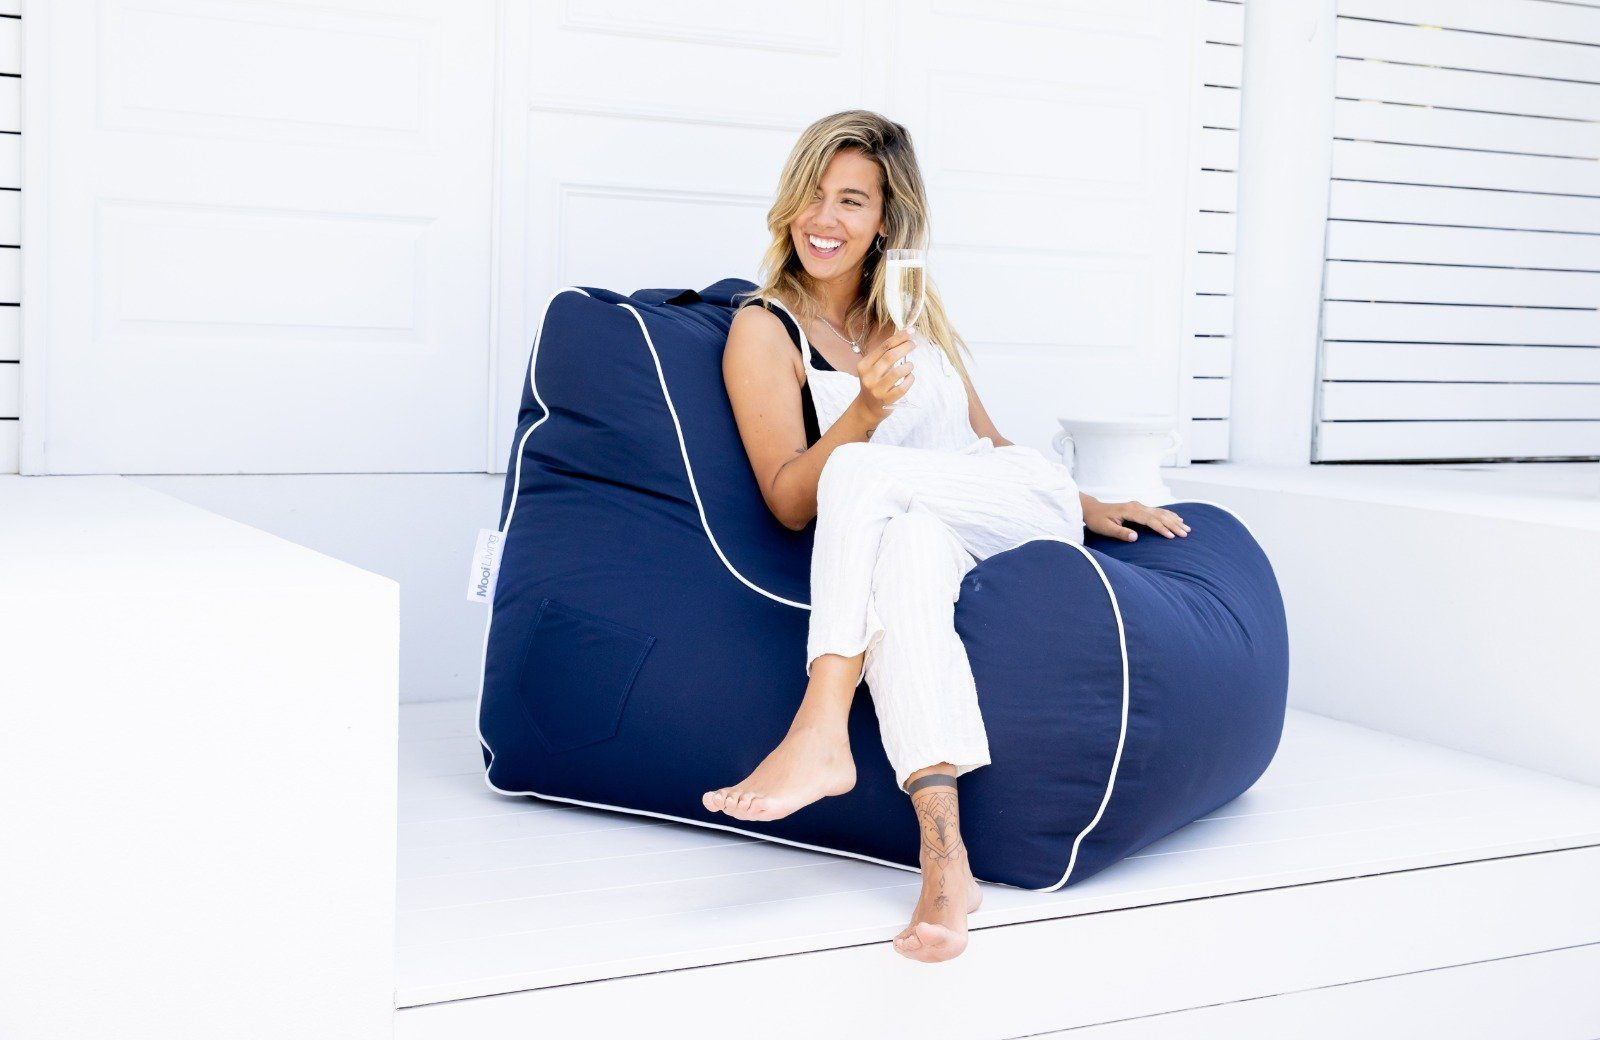 Outdoor Bean Bag - Bora Bora Chair UV Navy in 100% Olefin